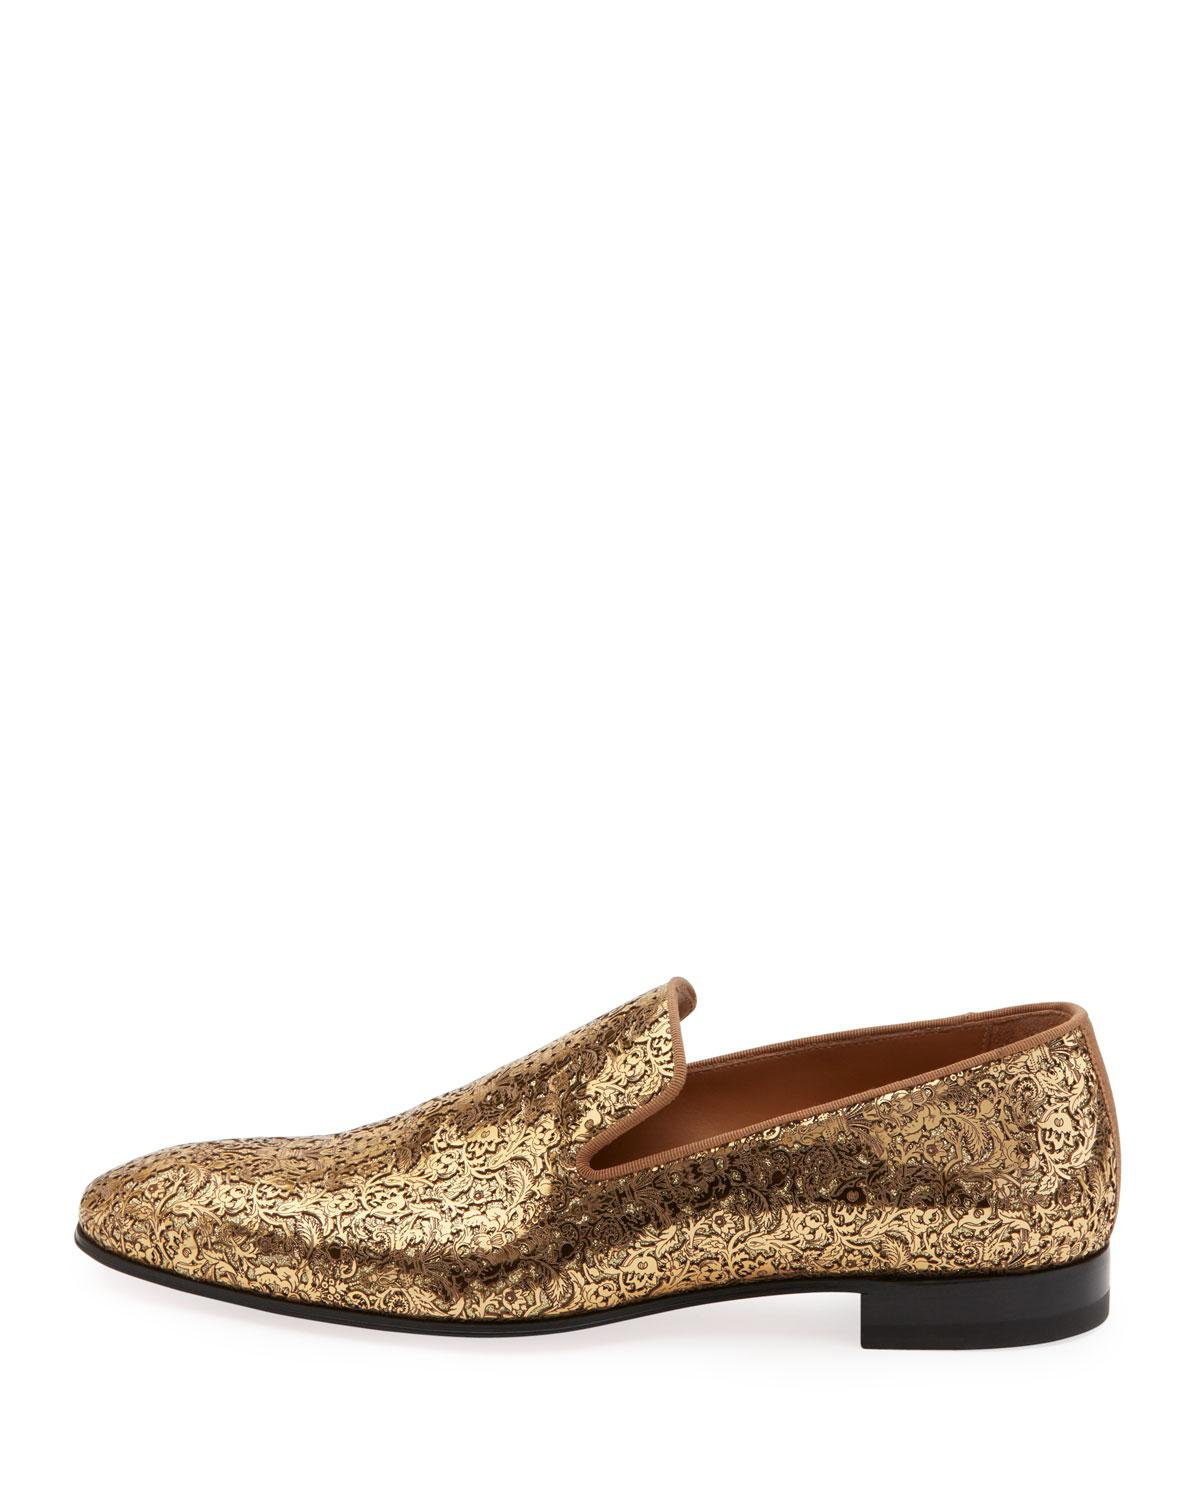 ff4263970a5 Lyst christian louboutin dandelion flat in metallic for men jpg 1200x1500  Loafers gold christian louboutin logo